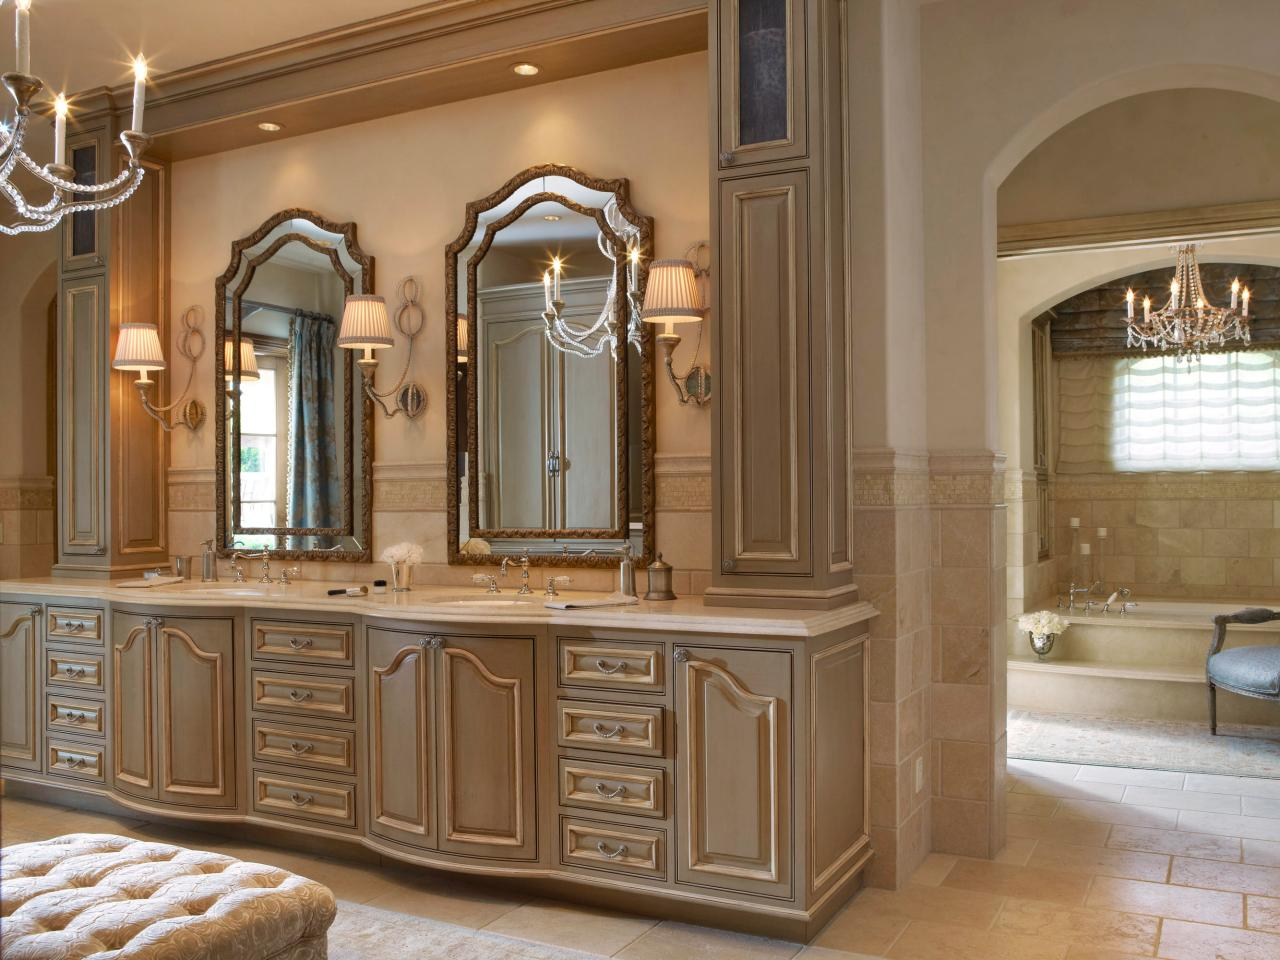 Dreamy bathroom vanities and countertops bathroom ideas designs hgtv Bathroom mirror cabinet design